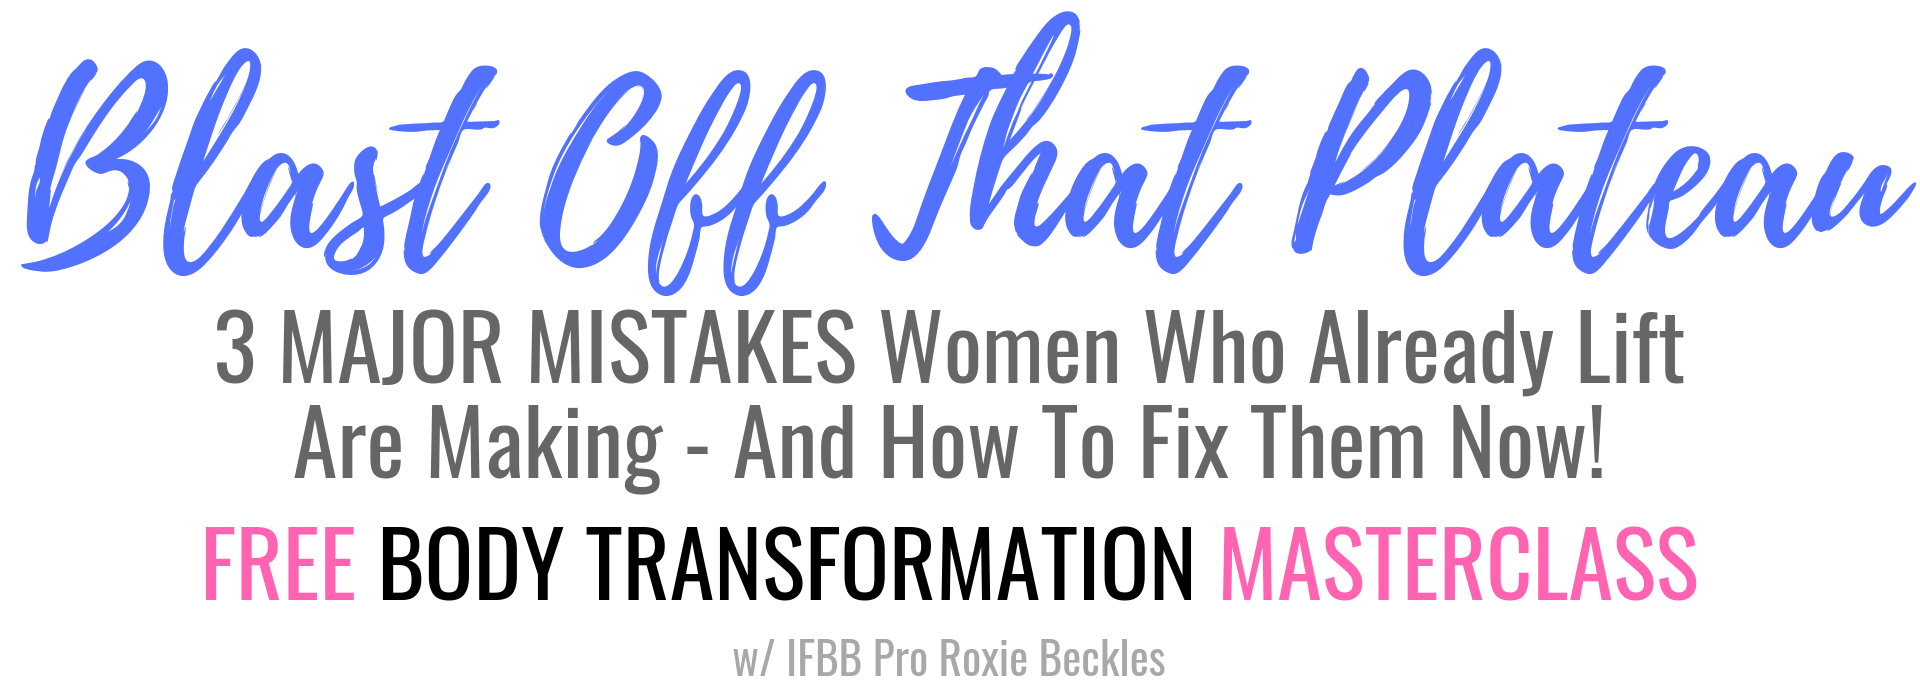 Free Webinar: Blast Off That Plateau NOW! 3 MAJOR MISTAKES You Need to Change ASAP!